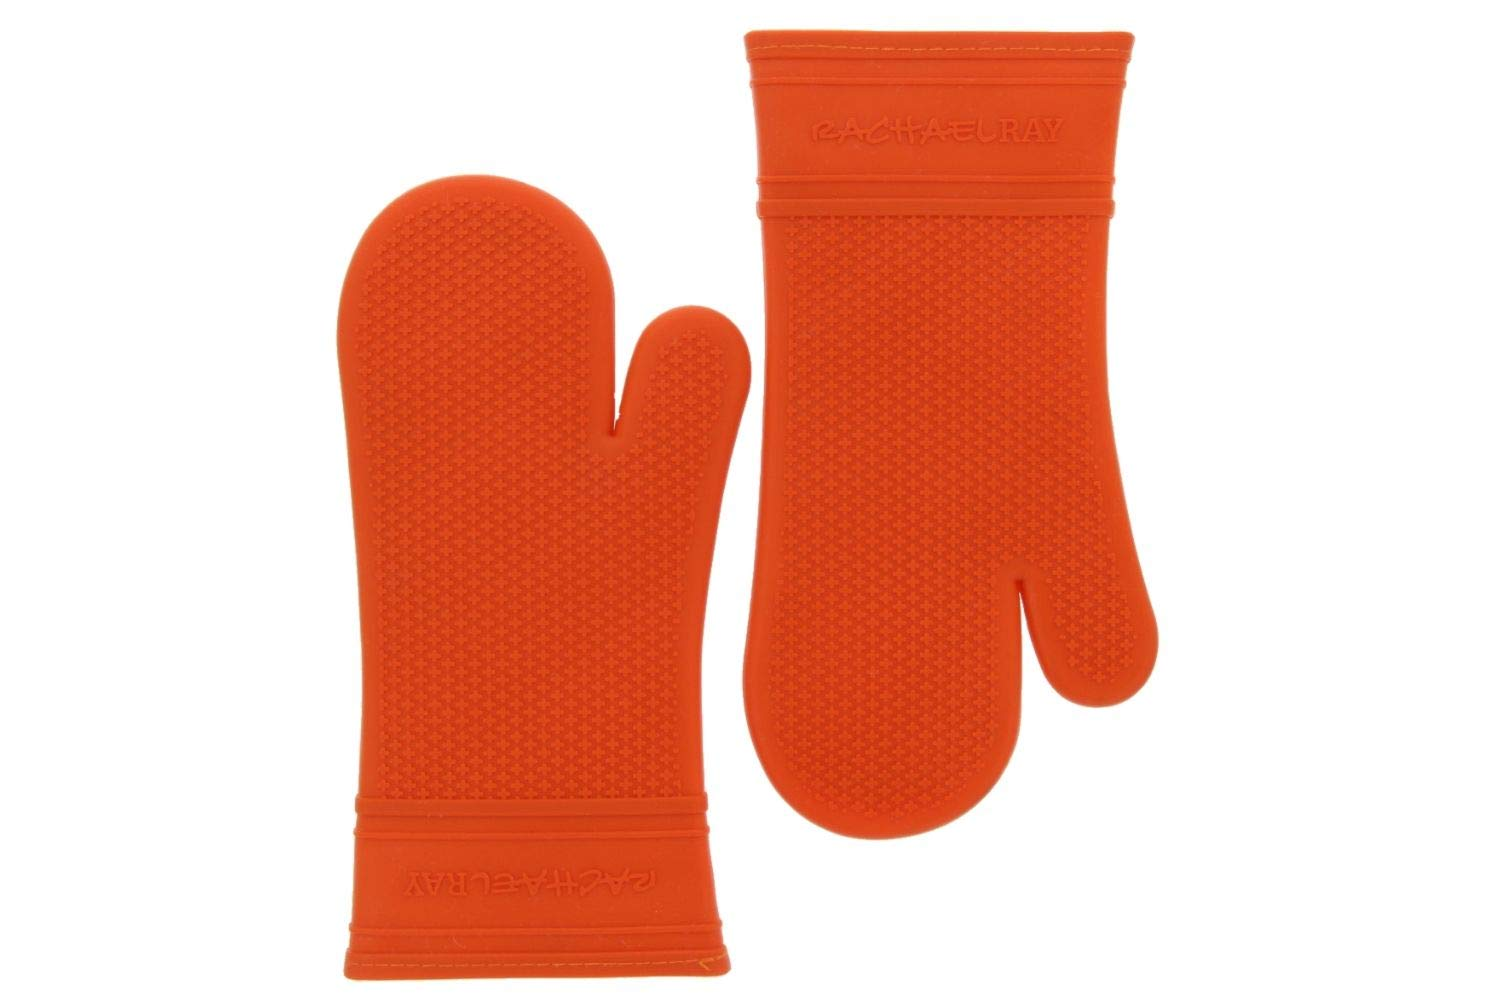 Rachael Ray Silicone Oven Mitts, 2pk -Heat Resistant Silicone Oven Gloves to Safely Handle Hot Cookware Items-Flexible, Waterproof Silicone Gloves with Non-Slip Grip and Insulated Pockets-Burnt Orange